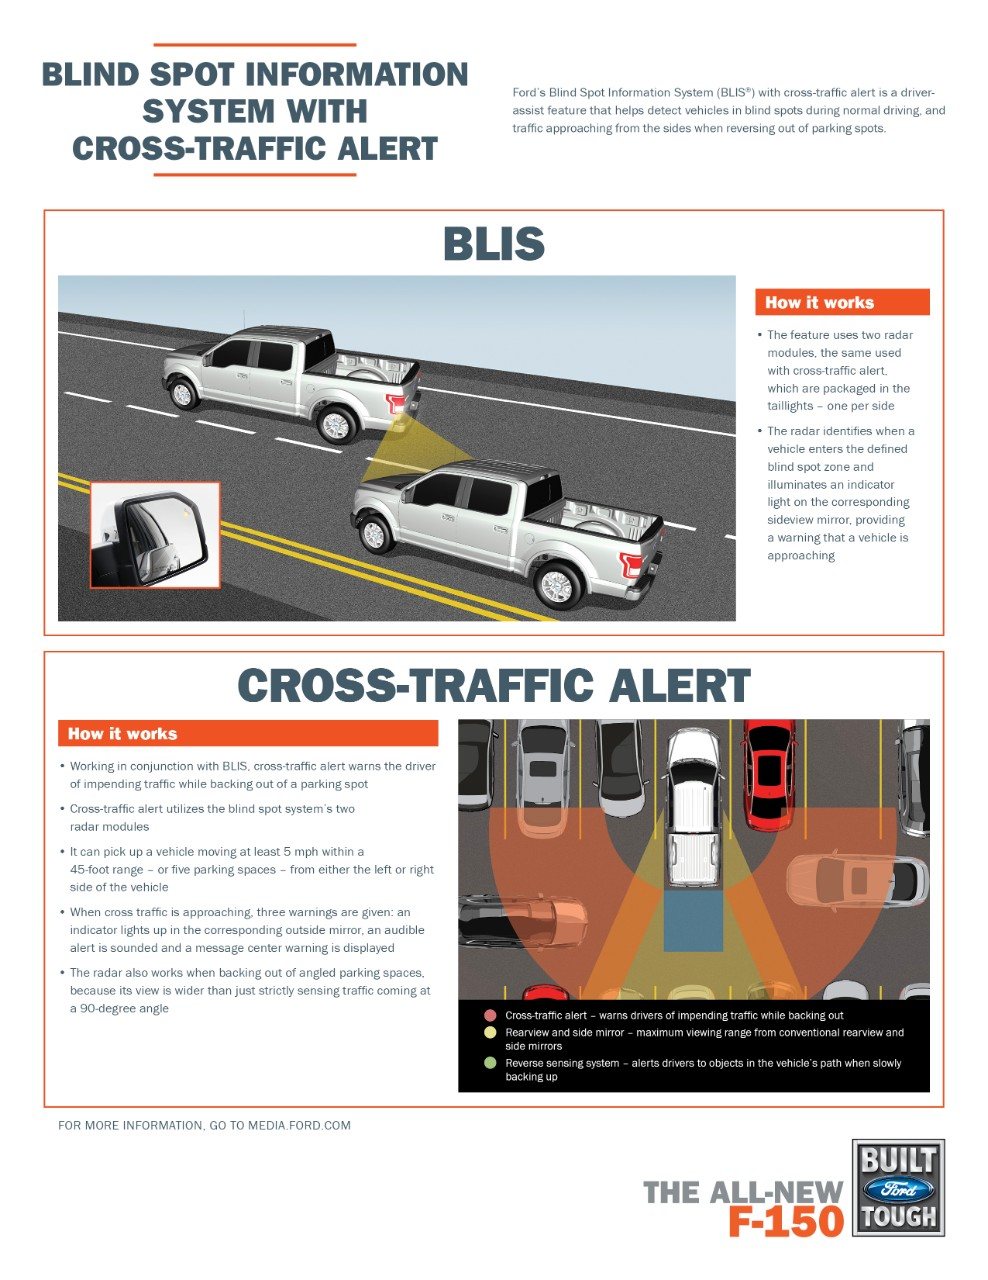 Blind spot information system with cross-traffic alert